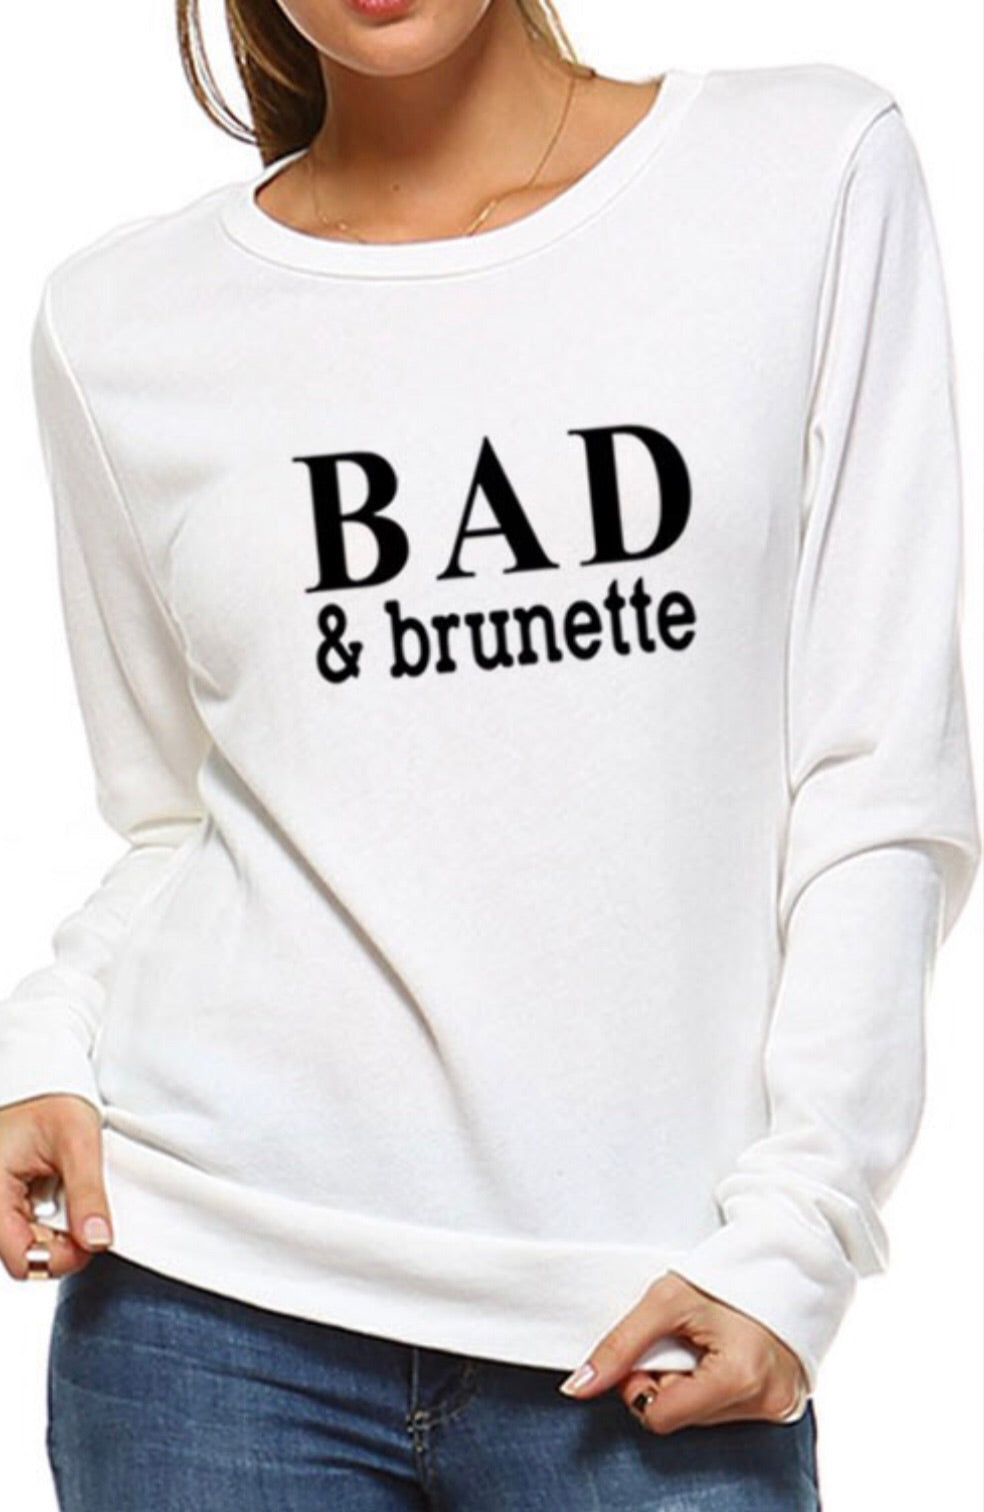 Bad Brunette Sweatshirt